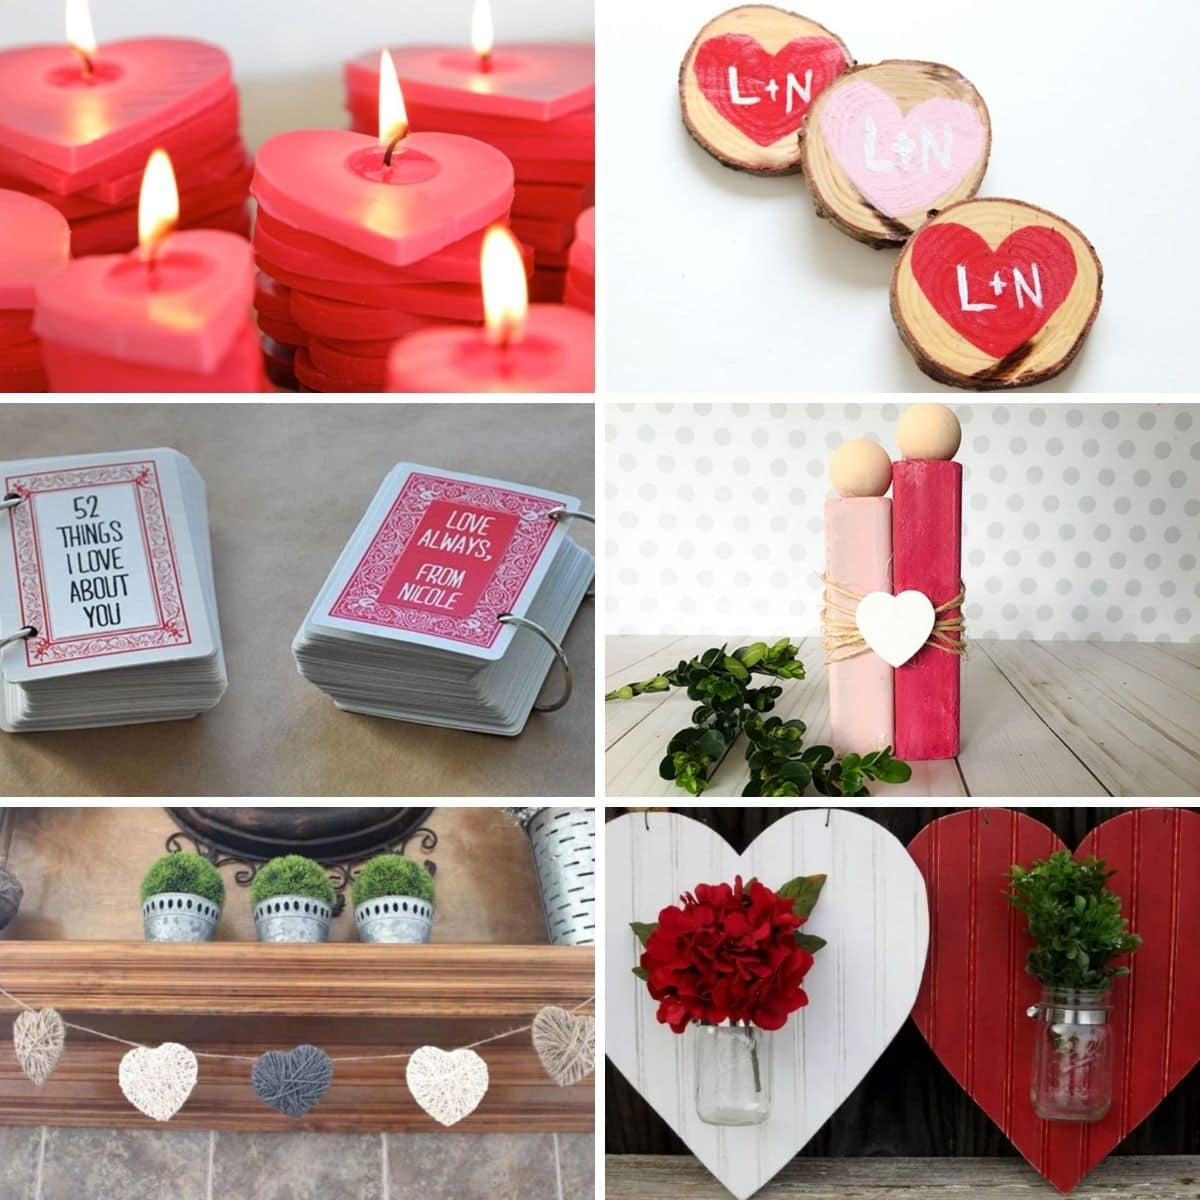 "6 images: red heart shaped candles lit with a flame, 2 card sized books with teh text ""52 things I love about you"", a wooden mantel with a yarn heart garland hanging in from it, 3 wood slice coasters with hearts and initials on them, a wooden ornament of 2 people in white and pink tied together with twine and a heart, 2 wooden hearts, one red and one white, with mason jars on the front filled with flowers."